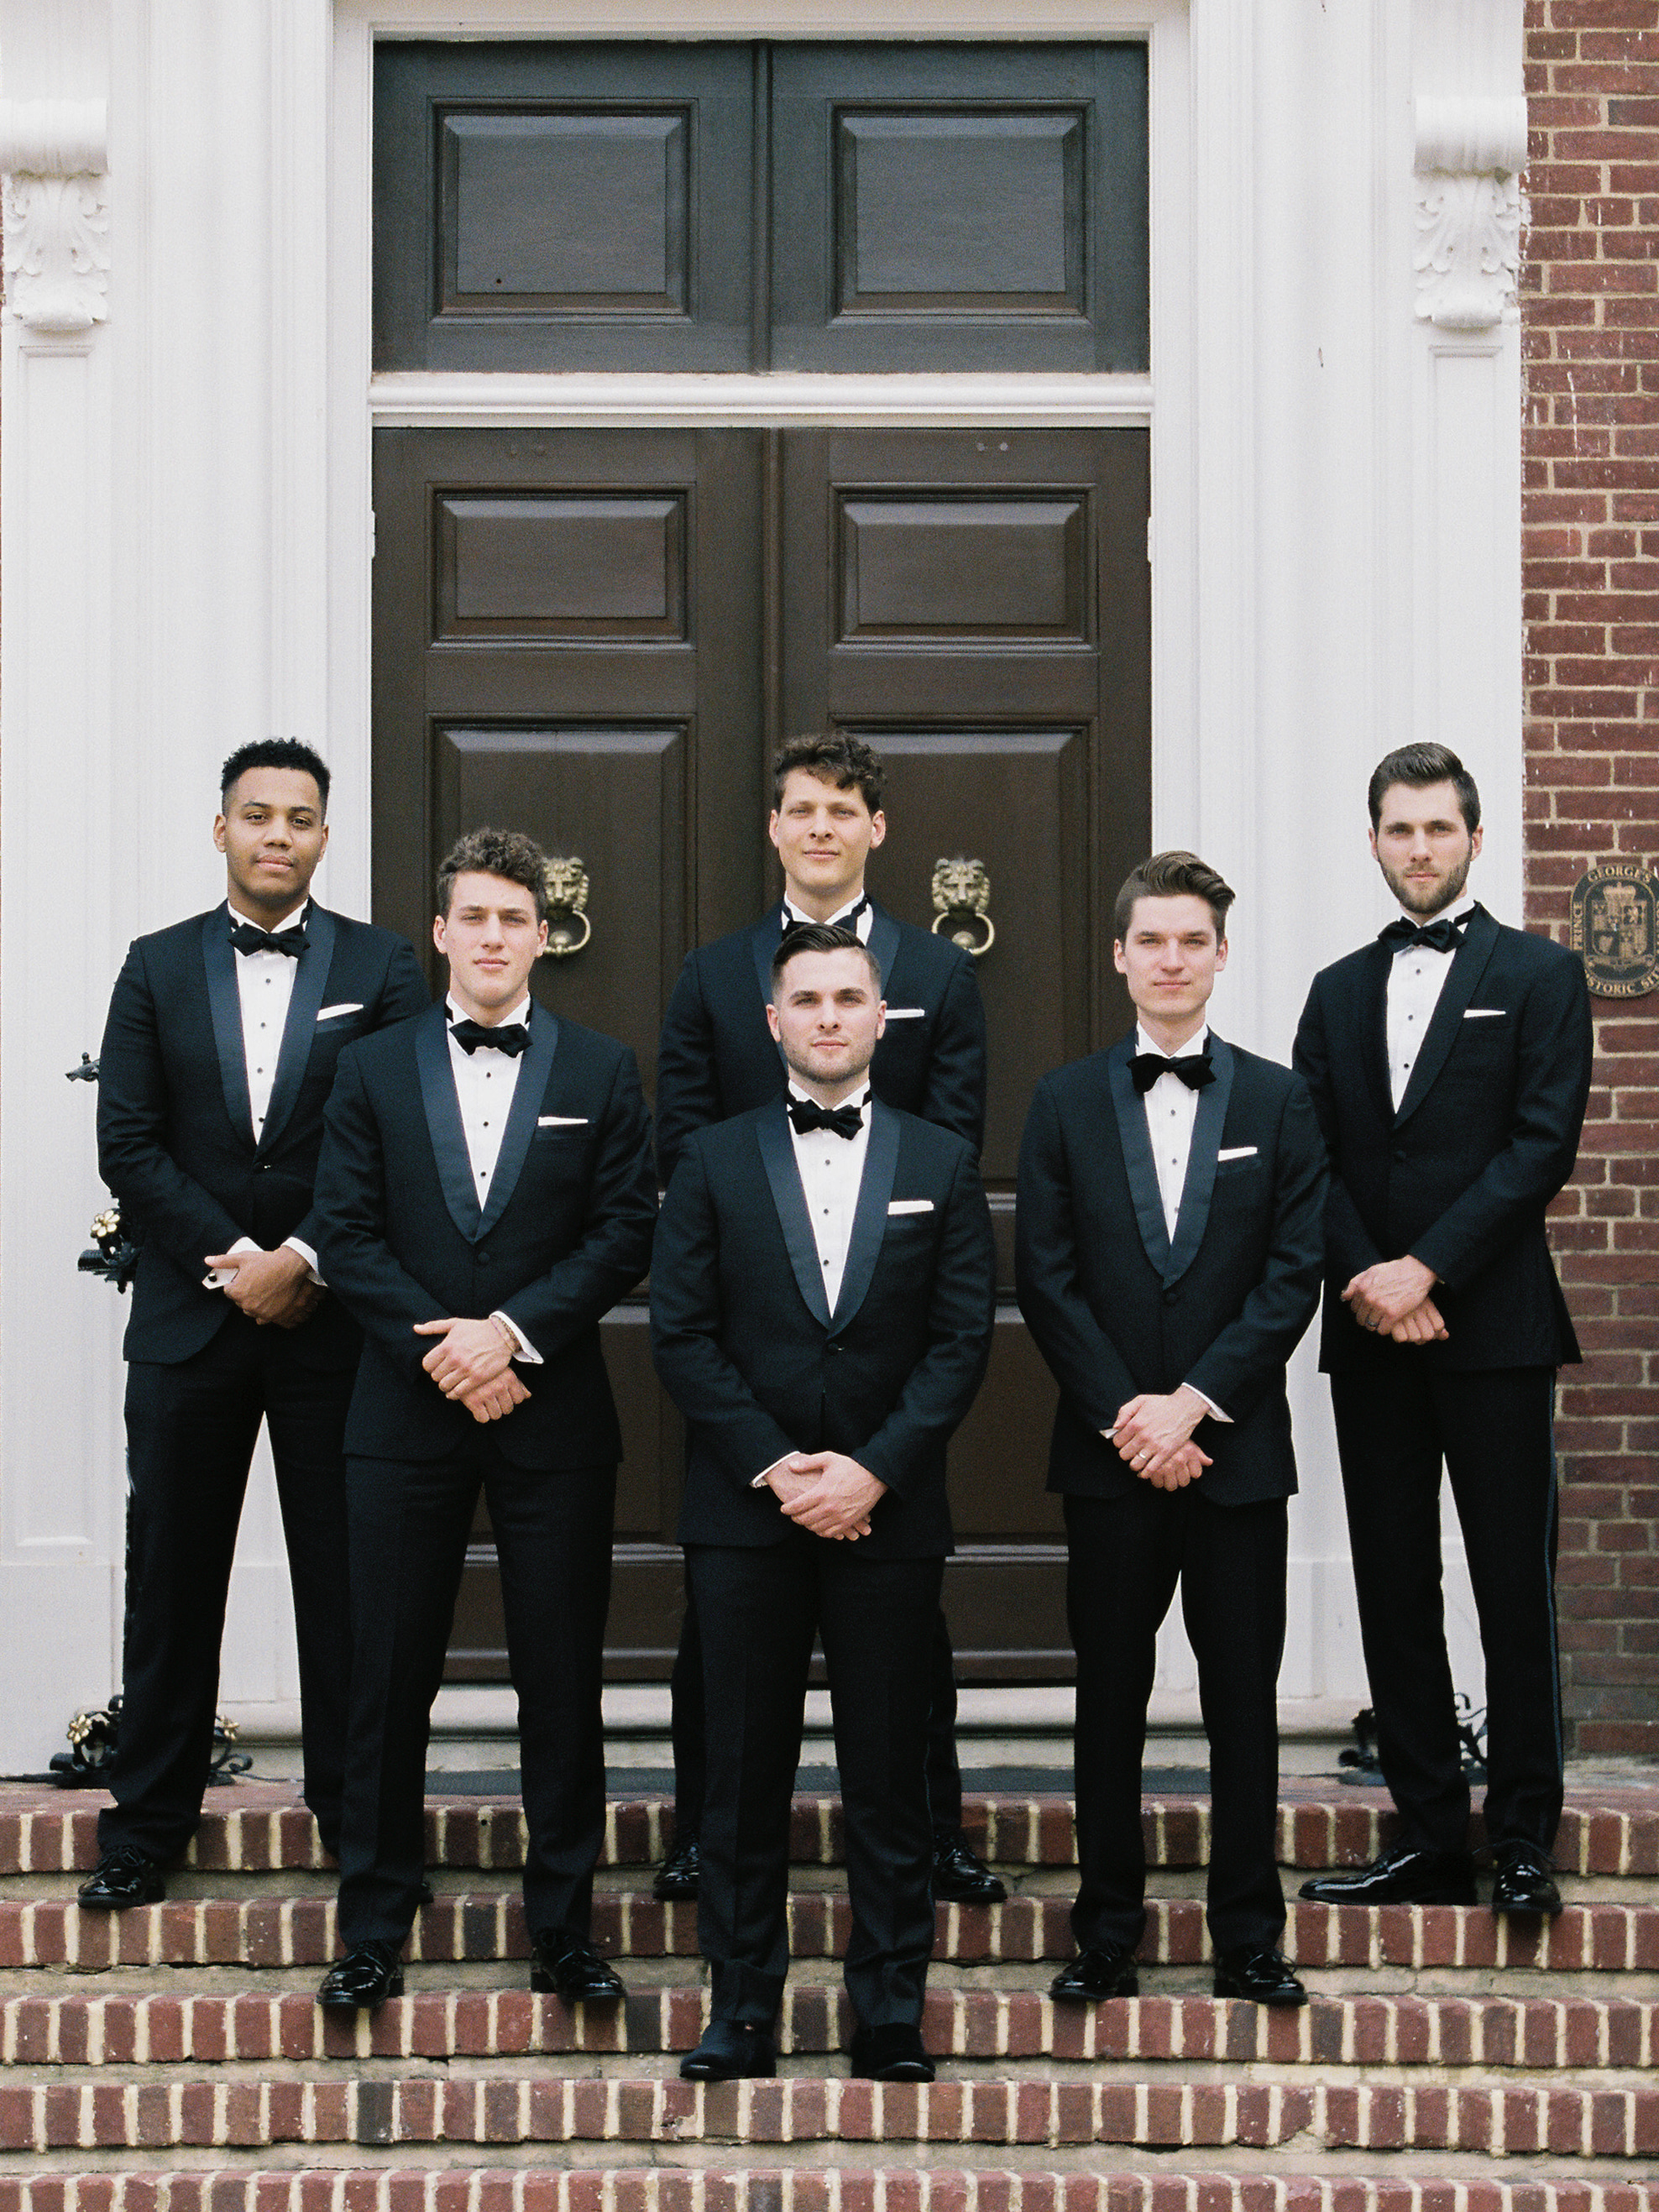 macey joshua wedding groom and groomsmen in black tuxedos